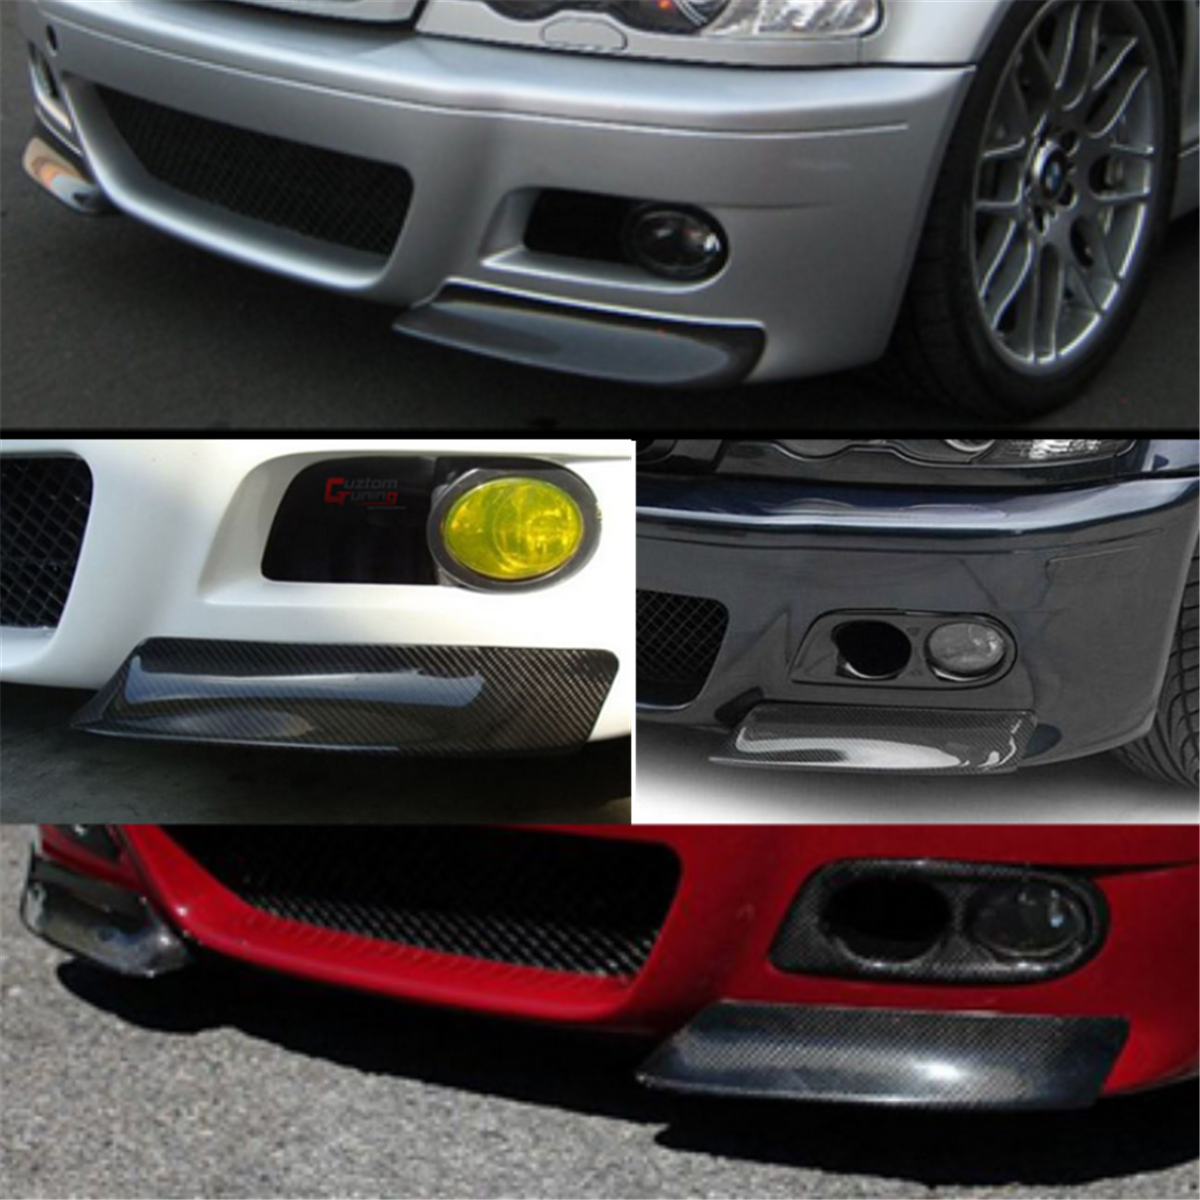 Racing Carbon Fiber Front HDMI Splitter Bumper Lip Spoiler Wing for Bmw E46 M3 99-06 2001